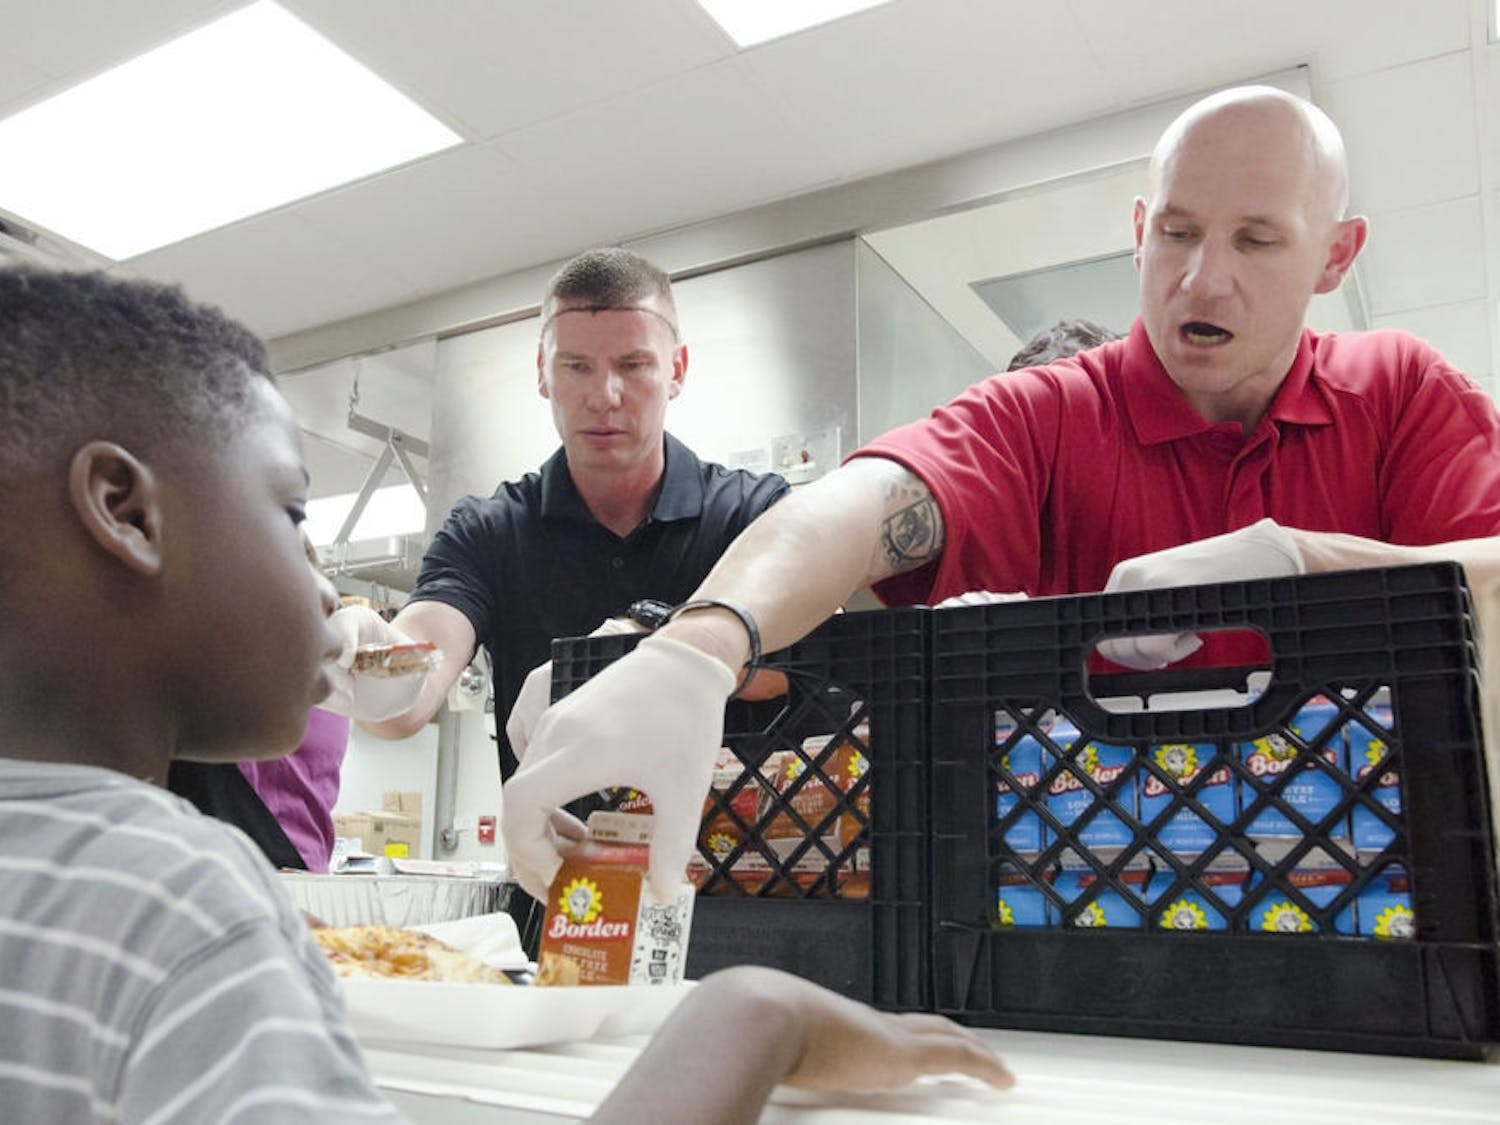 [FILE PHOTO] John Nordman, right, hands 8-year-old Micah Reed a chocolate milk at the Reichert House on Tuesday. Nine newly hired police officers served 128 students lunch.